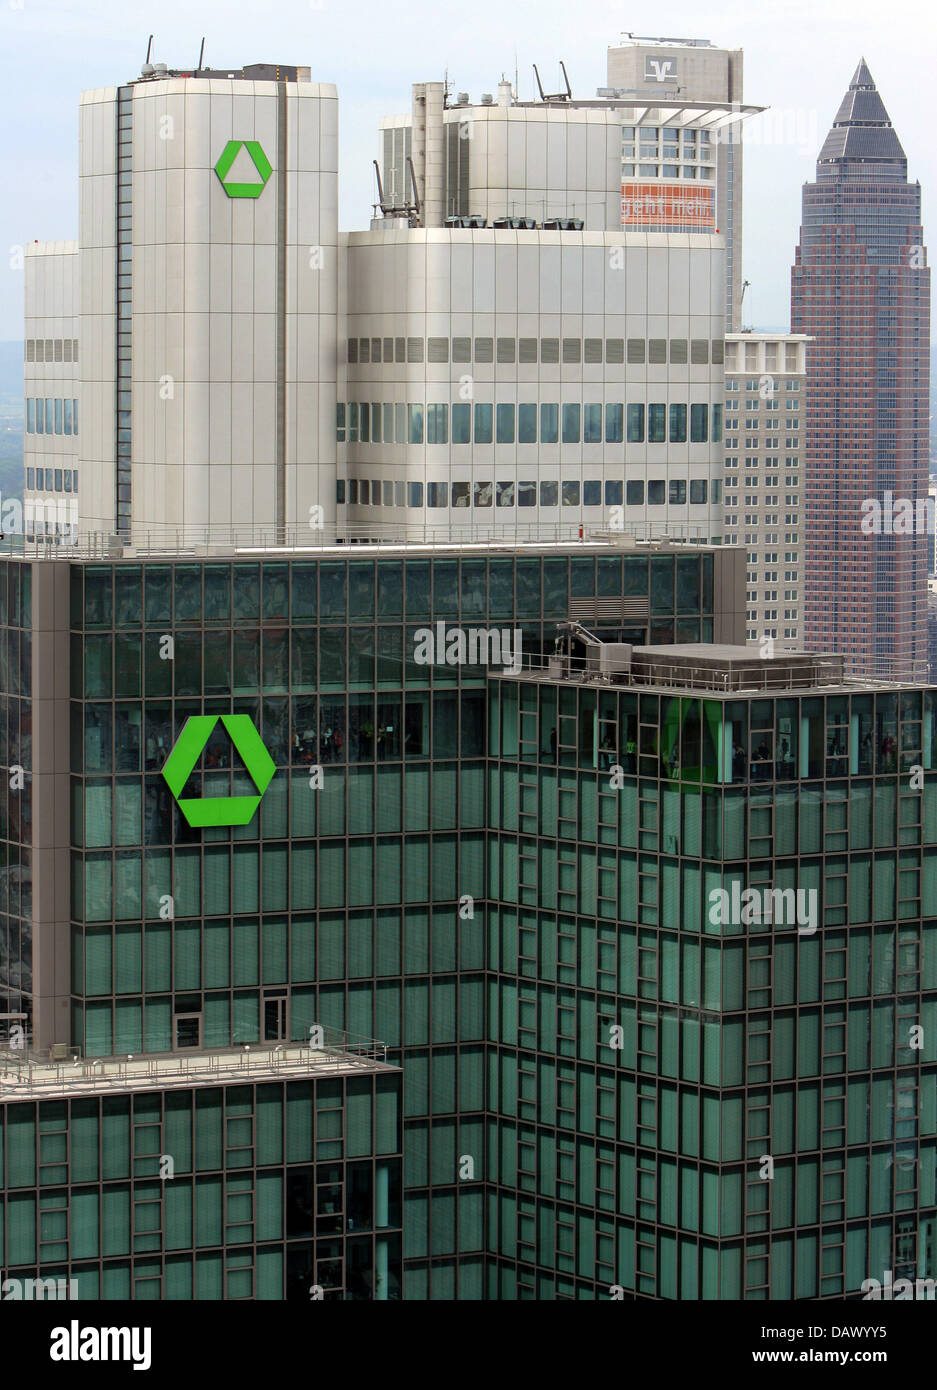 The picture shows the skyscrapers Gallileo (front), the 'Dresdener Bank' tower and the Messeturm (Fair Tower, back) in Frankfurt Main, Germany, 12 May 2007. Photo: Arne Dedert Stock Photo